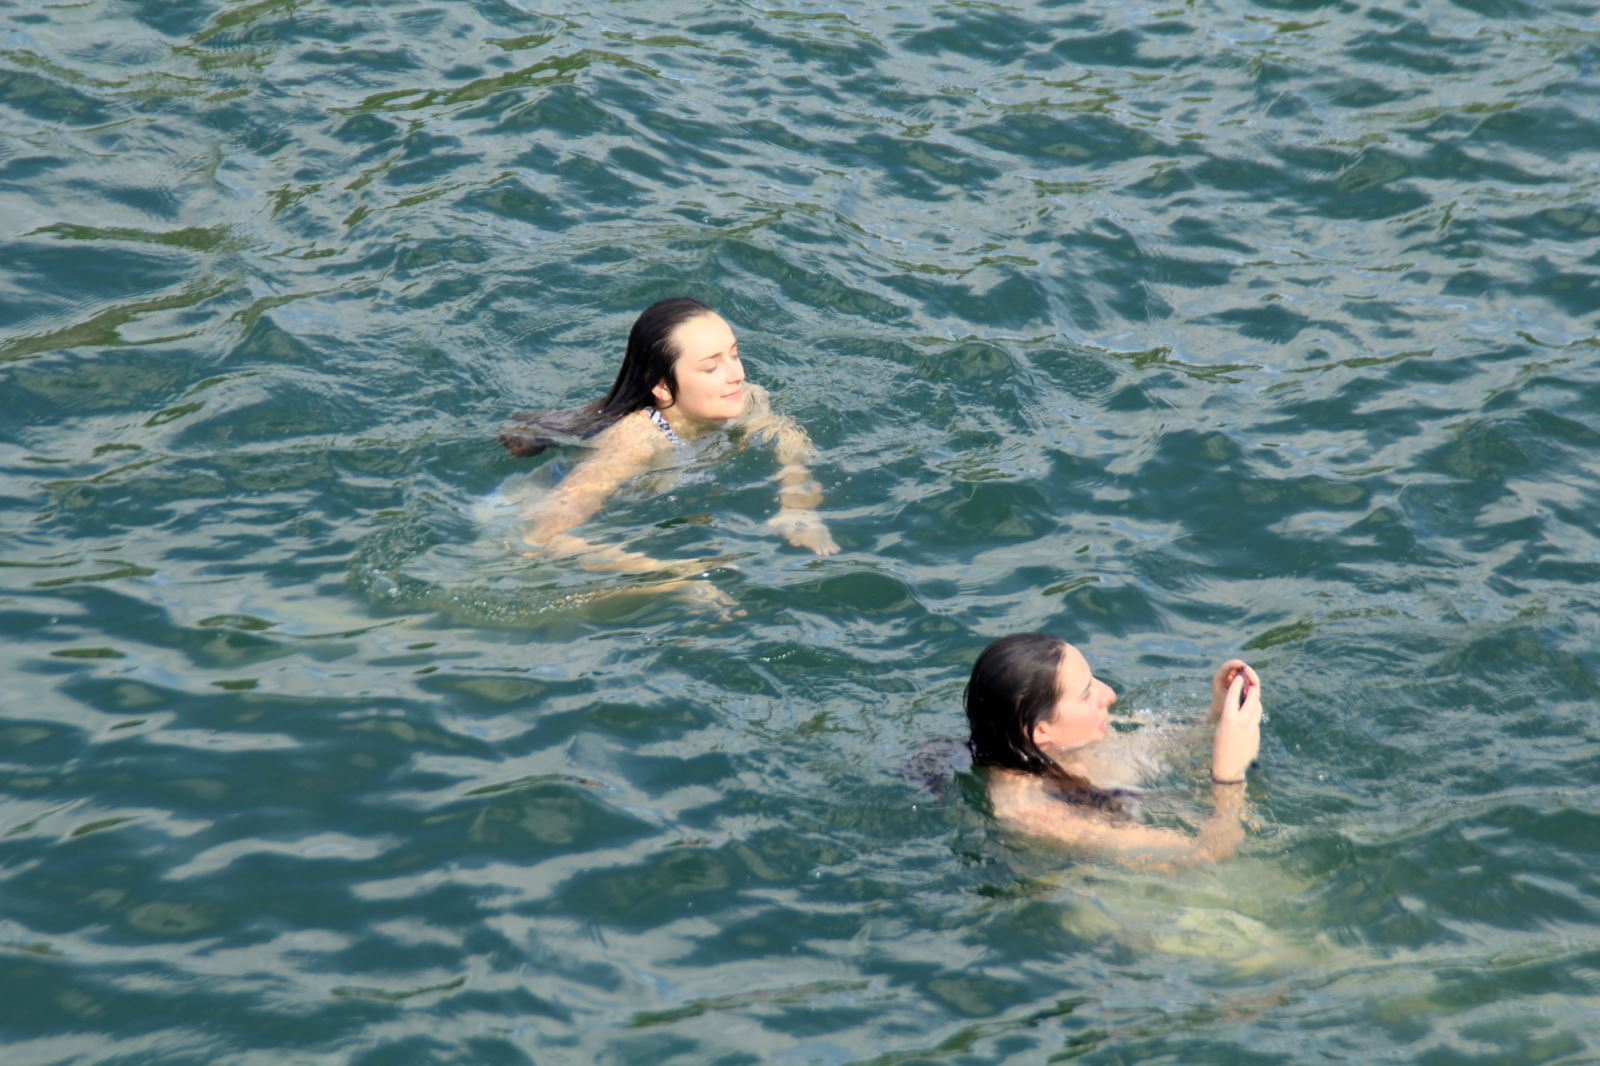 halong swimming.jpg